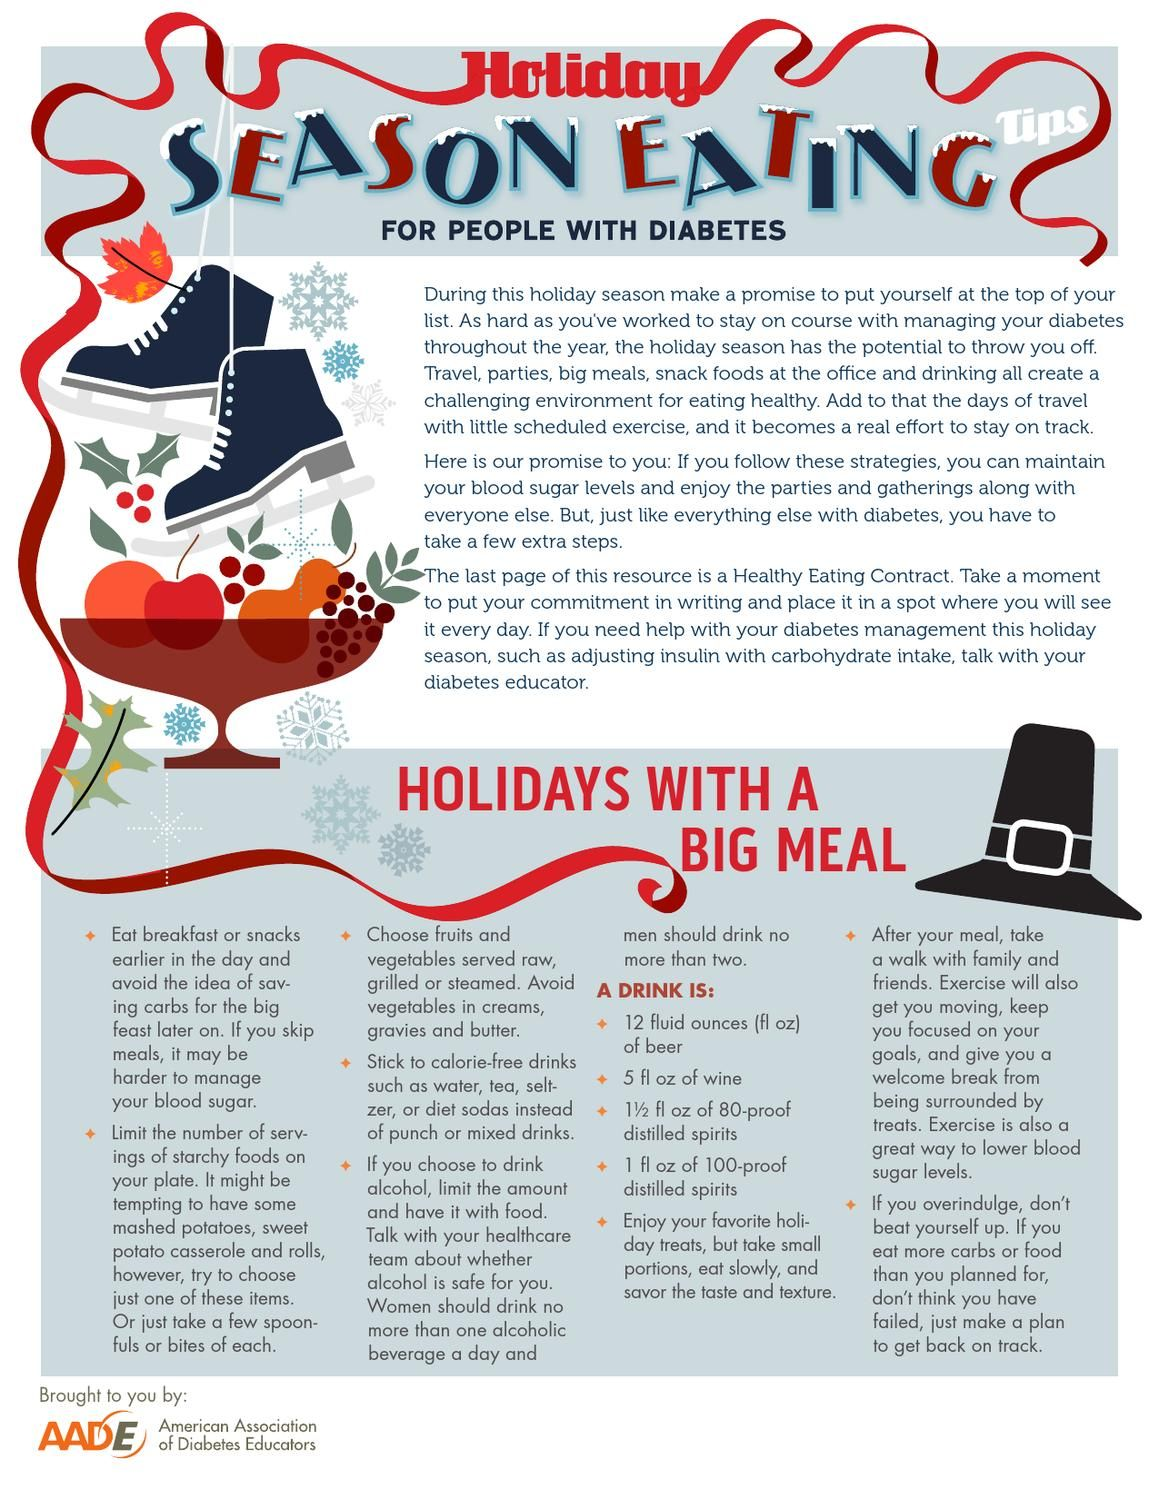 Season Eating for People with Diabetes Healthy holidays